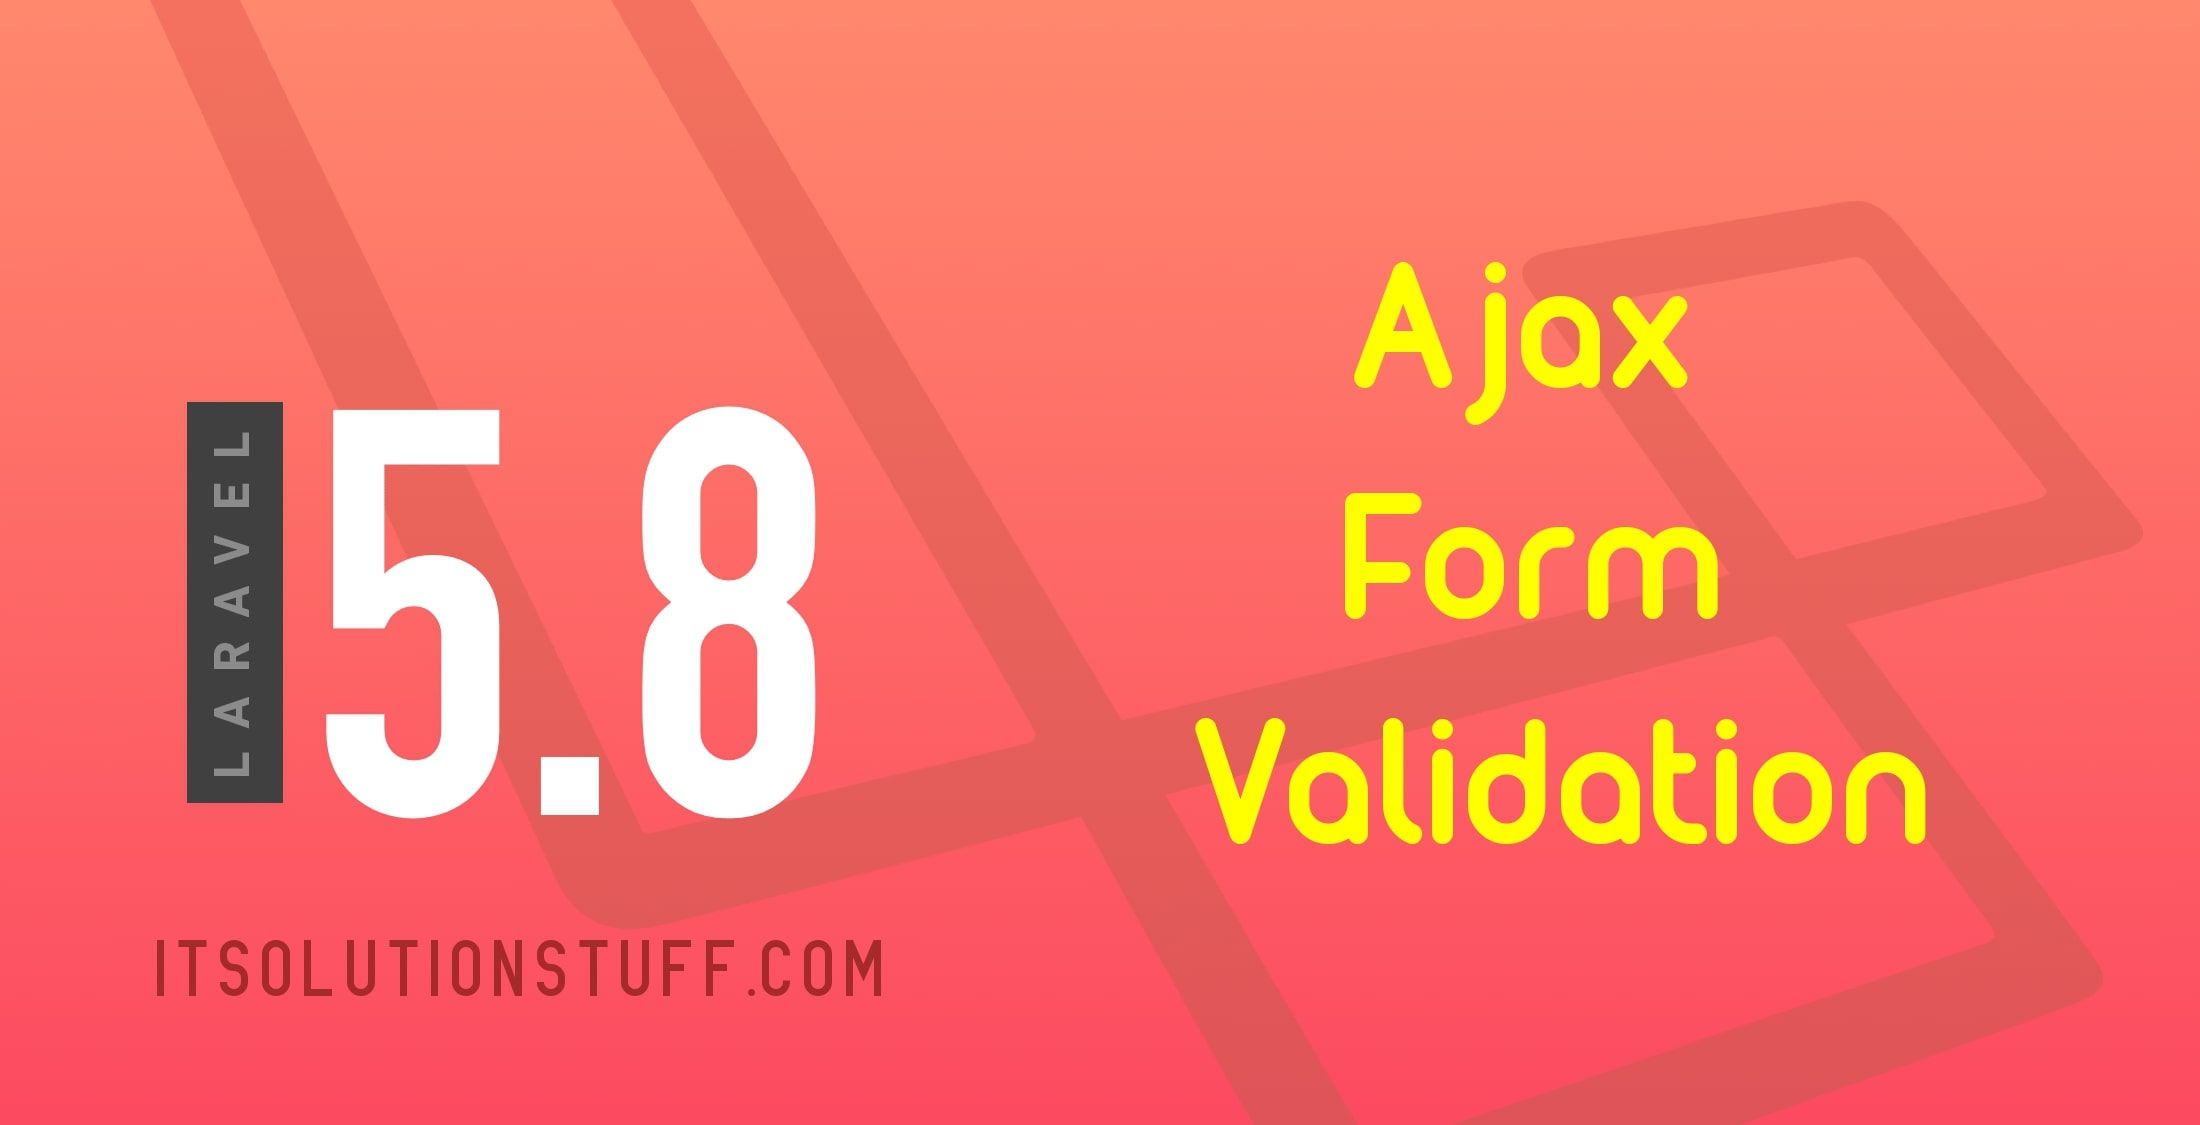 Jquery Ajax Form Validation with Laravel 5.8